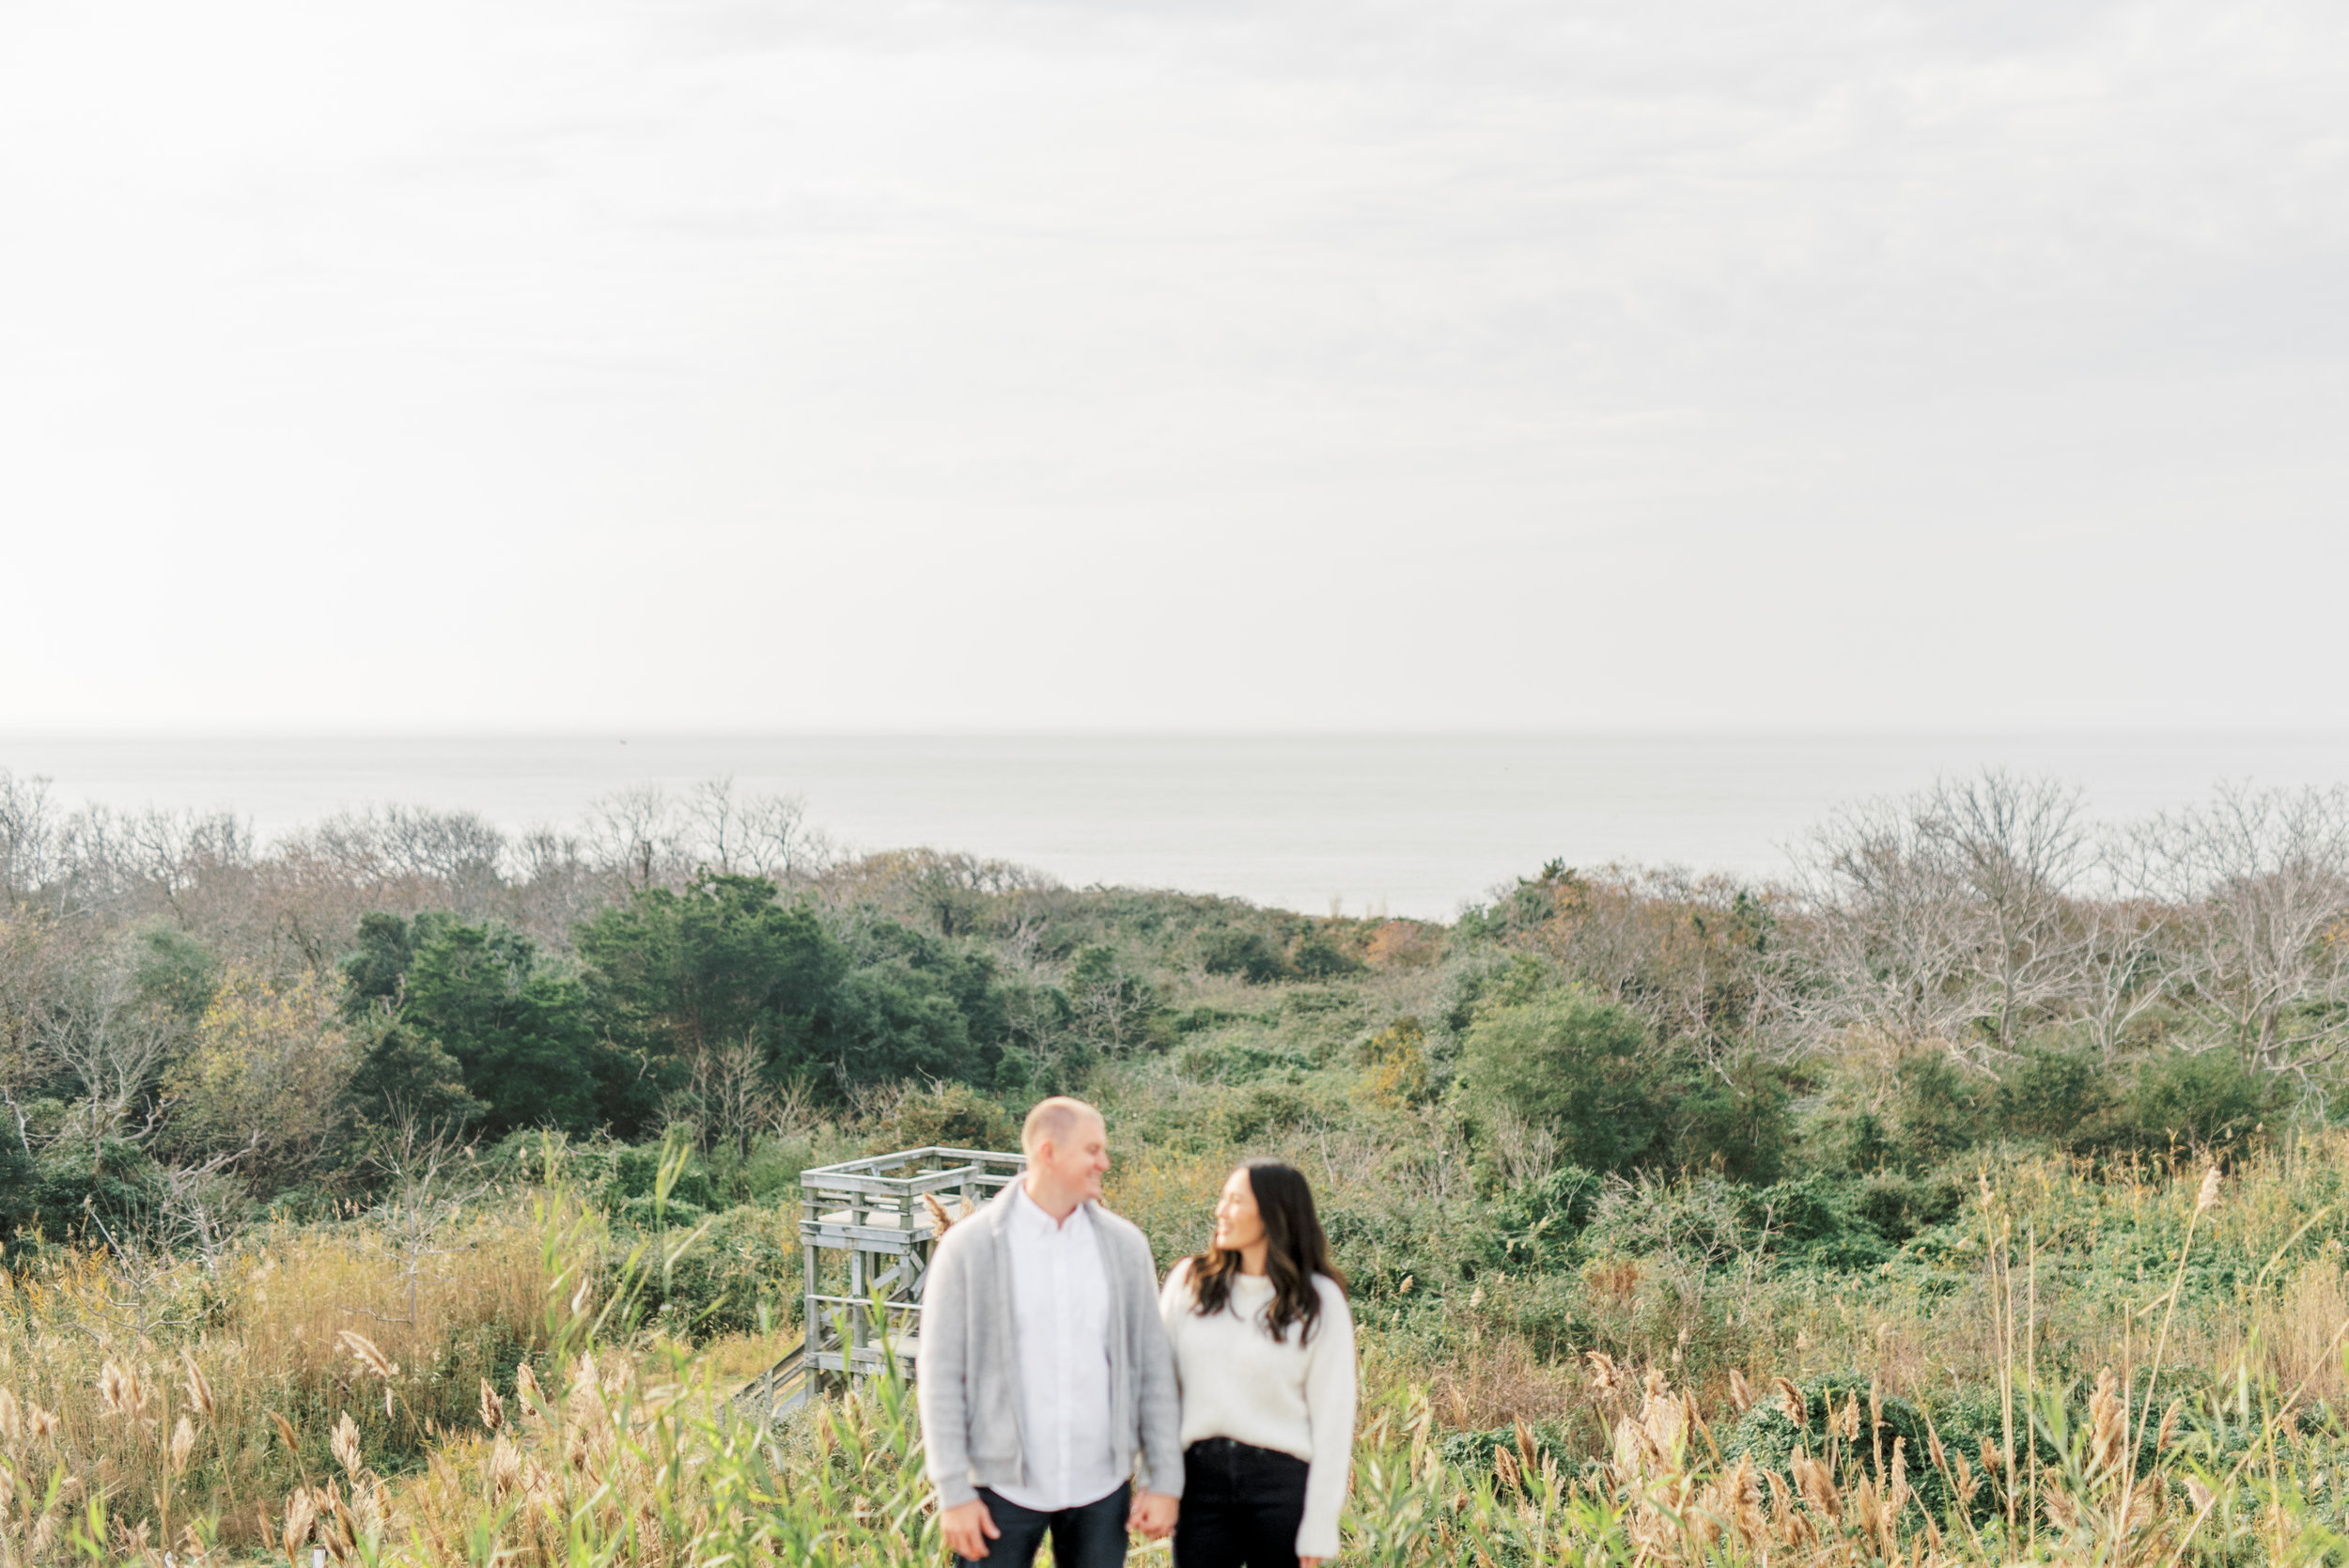 haley-richter-photography-cape-may-engagement-session-010.jpg